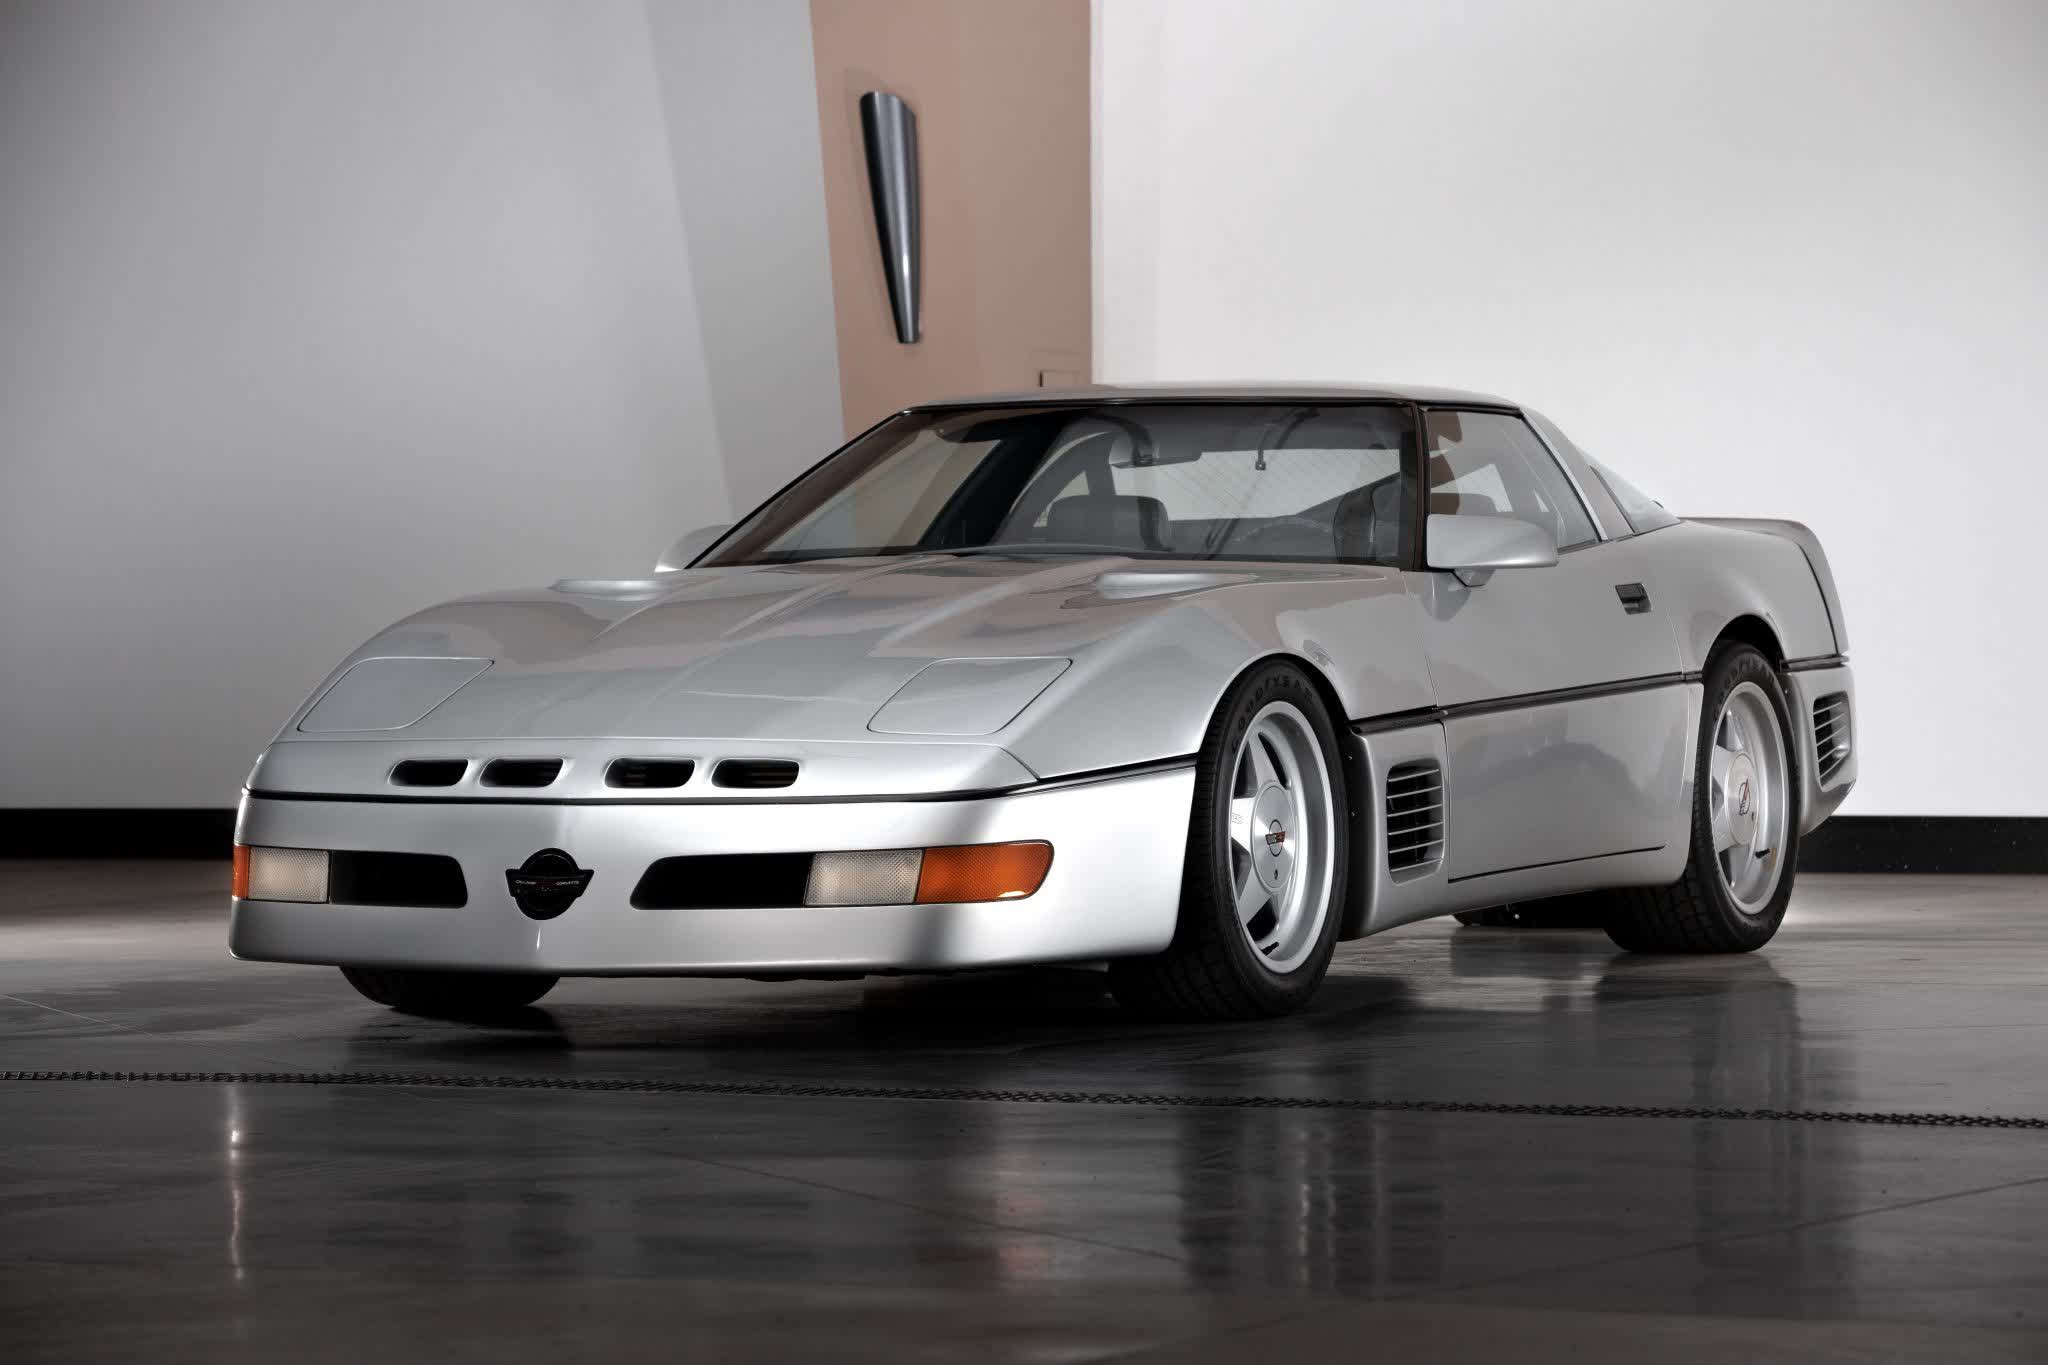 One-of-a-kind Corvette that hit 255 mph in 1988 heads to auction